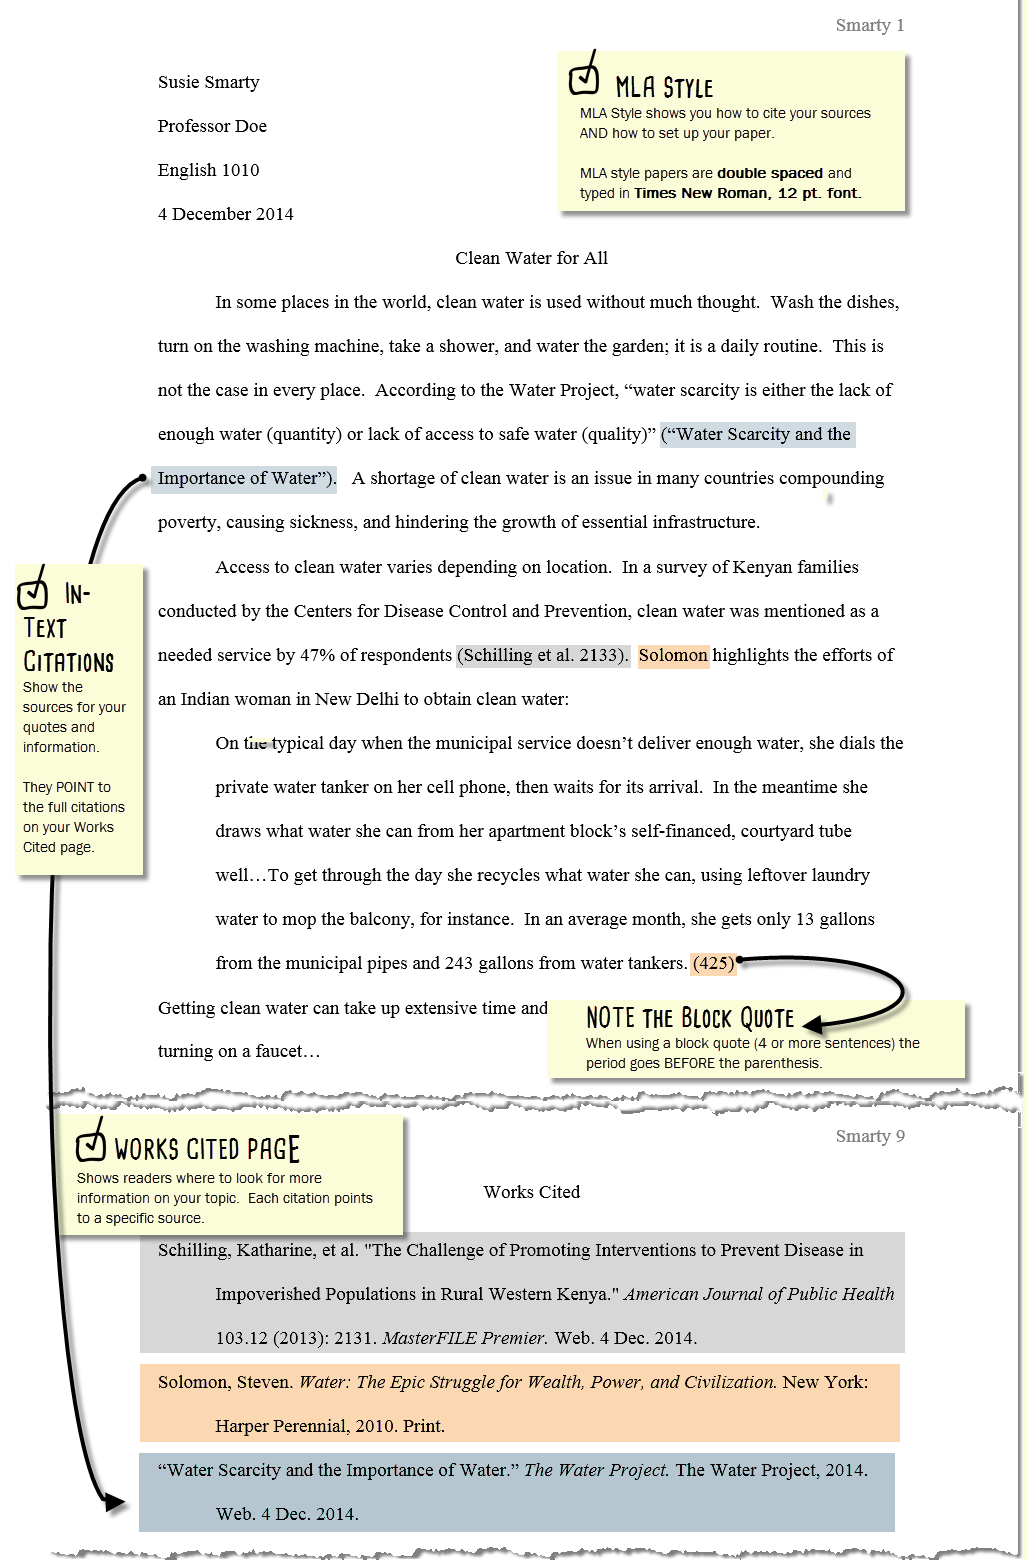 mla format of a paper Read more about how to cite a research paper using mla format how to cite a research paper in chicago style the chicago style of citing is commonly used in .